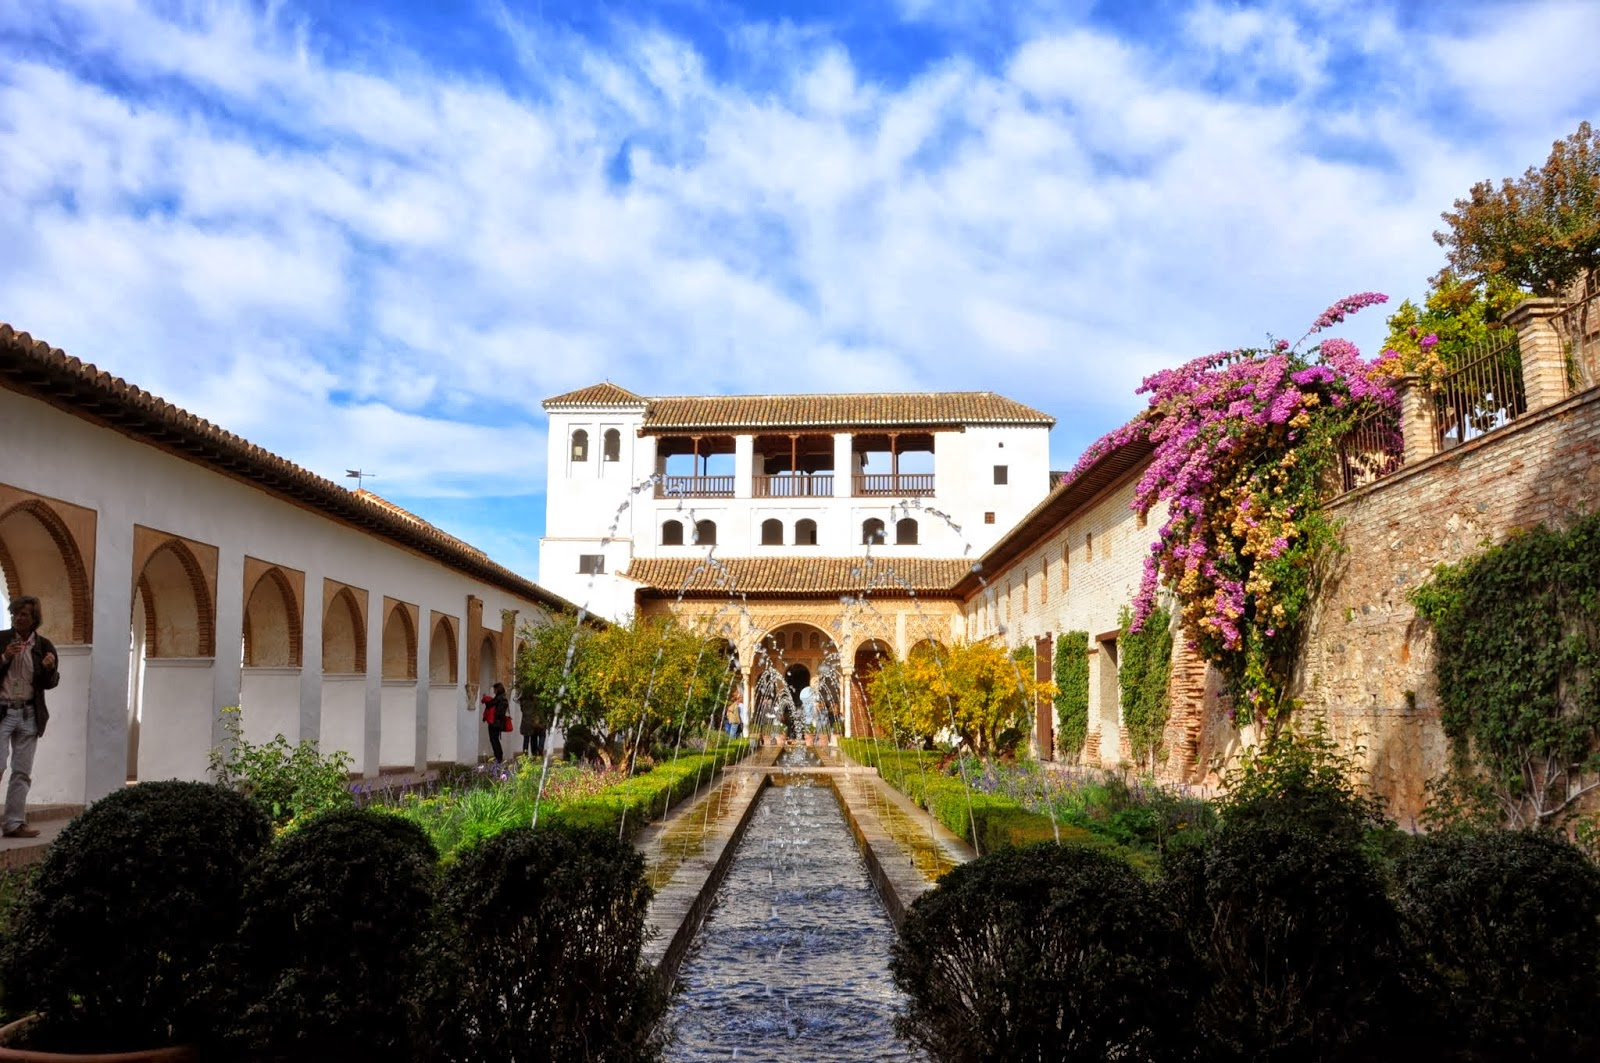 Itchy Feet Adventures: Alhambra - the Gardens of Generalife